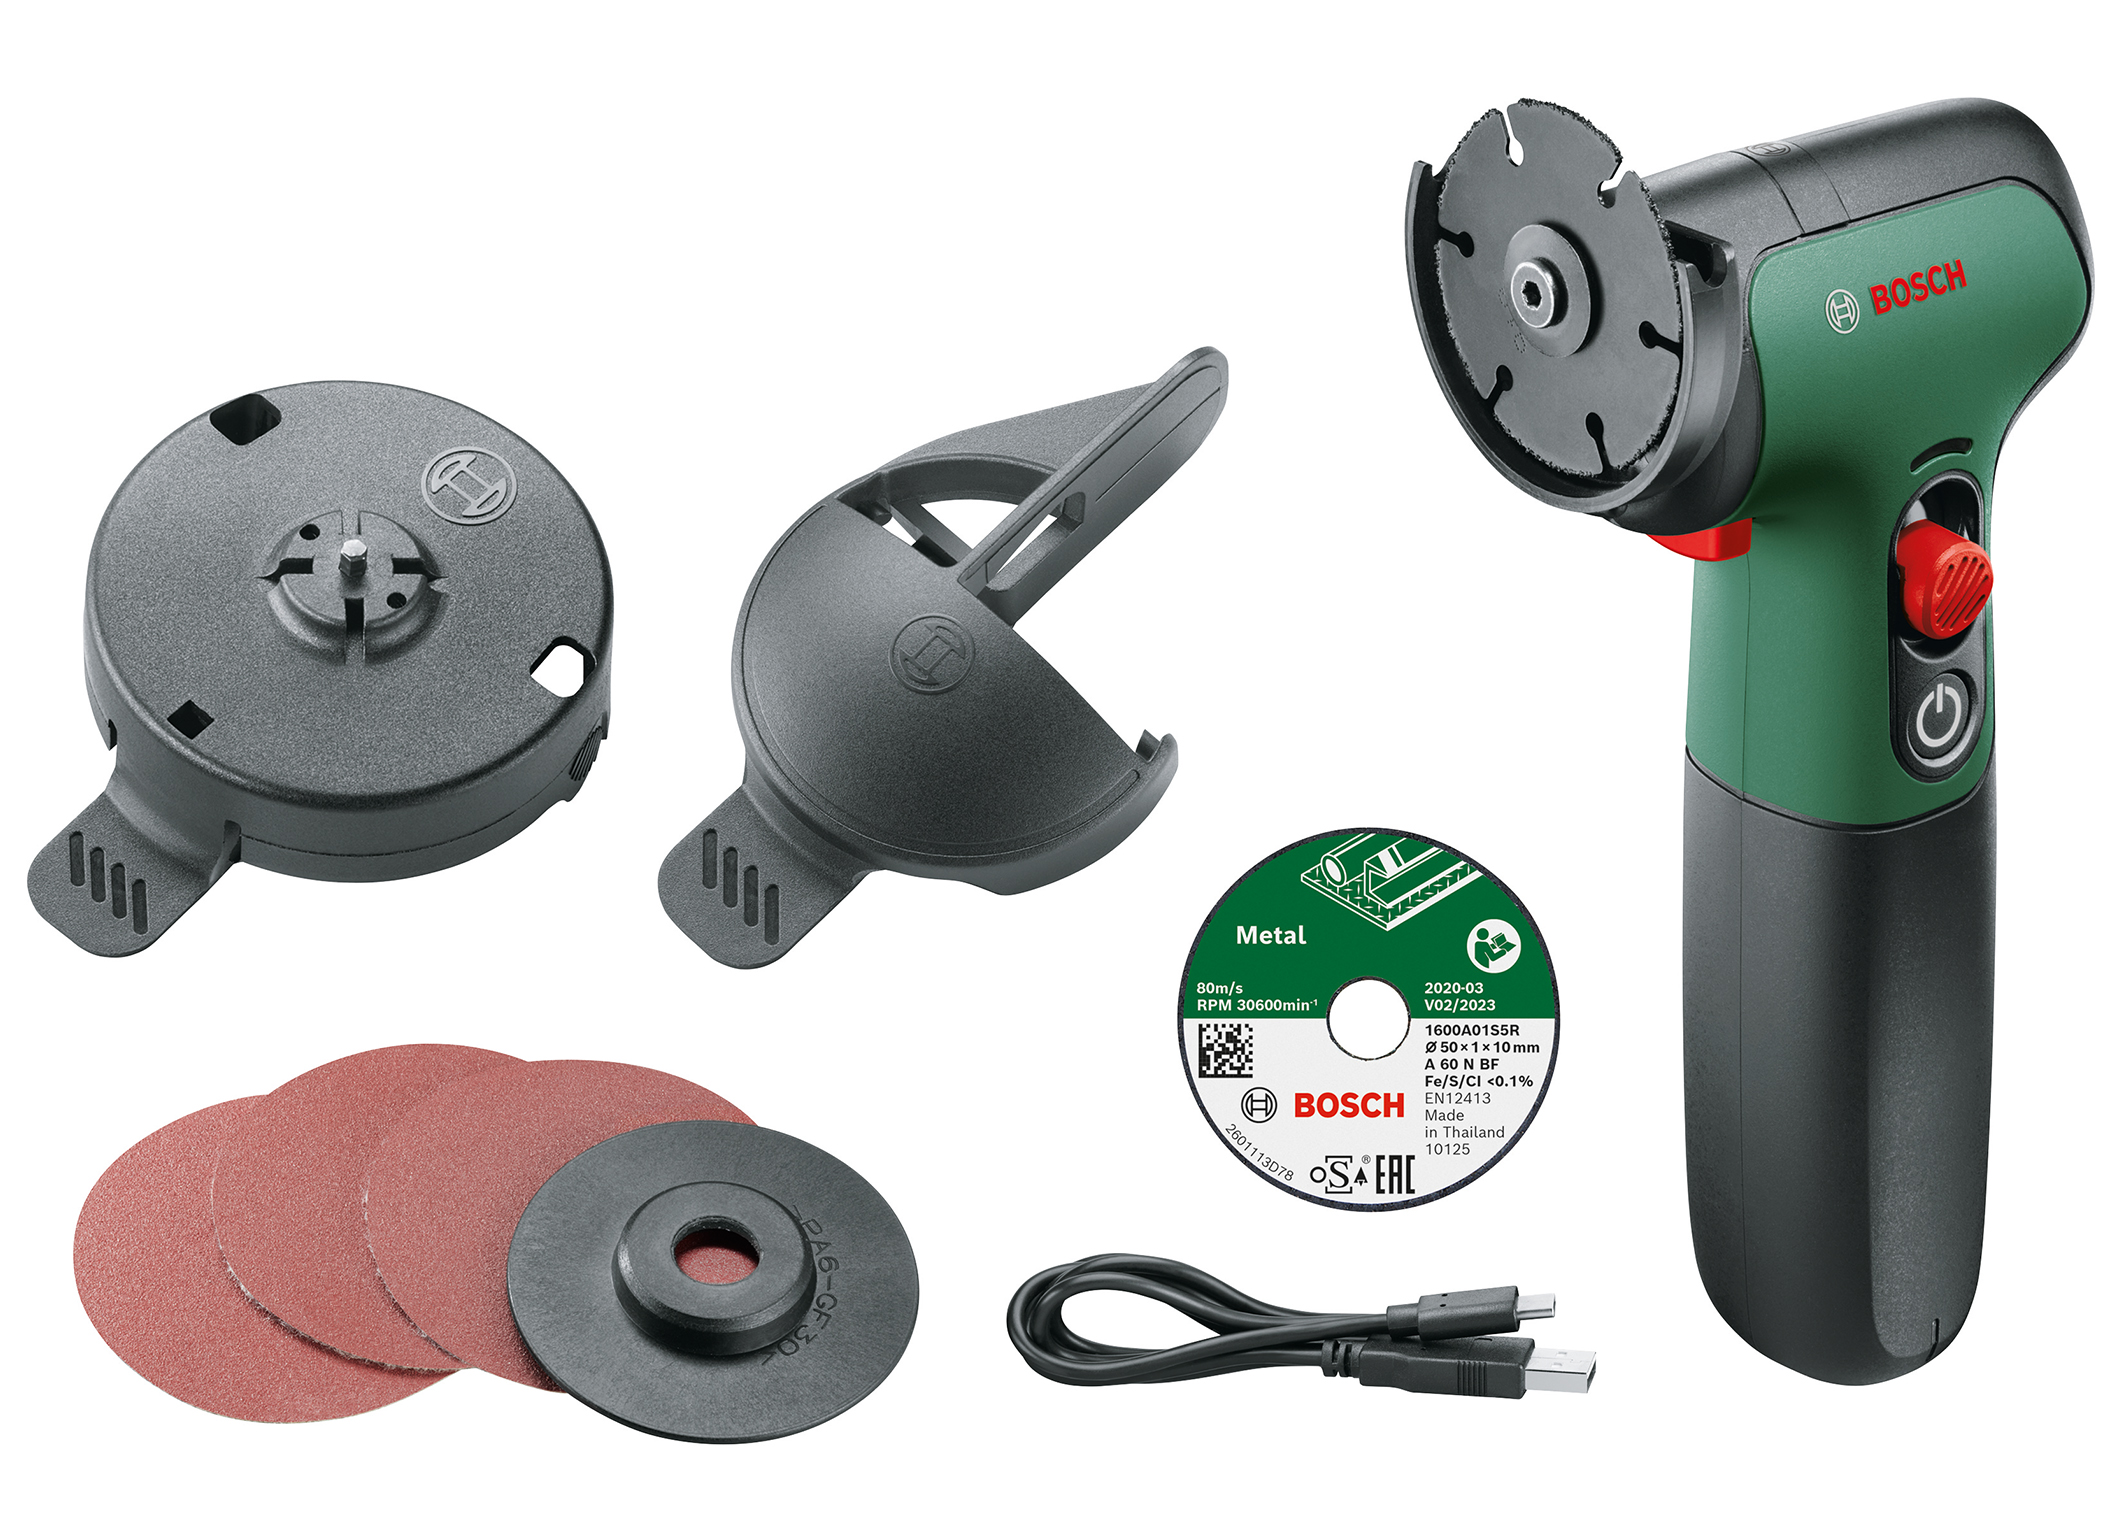 The smallest and lightest cordless angle grinder on the market: The EasyCut&Grind from Bosch